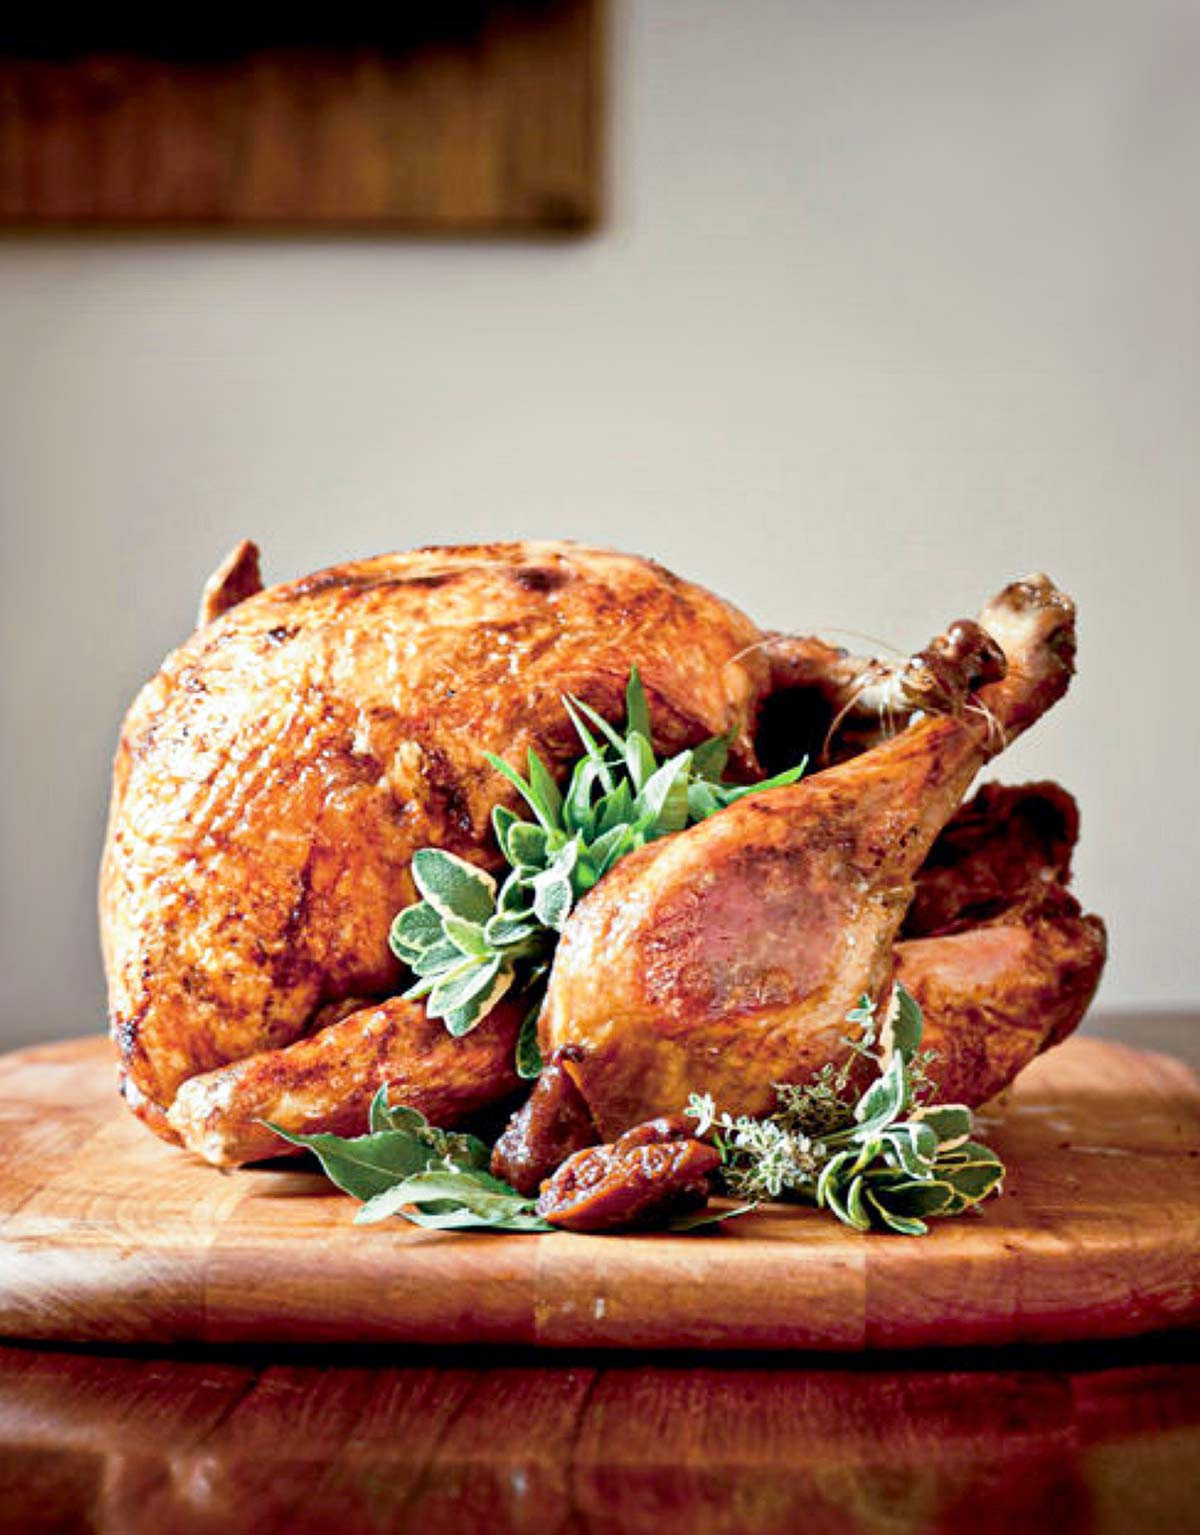 A whole deep-fried turkey, garnished with sage, bay, and thyme leaves on a wooden cutting board.